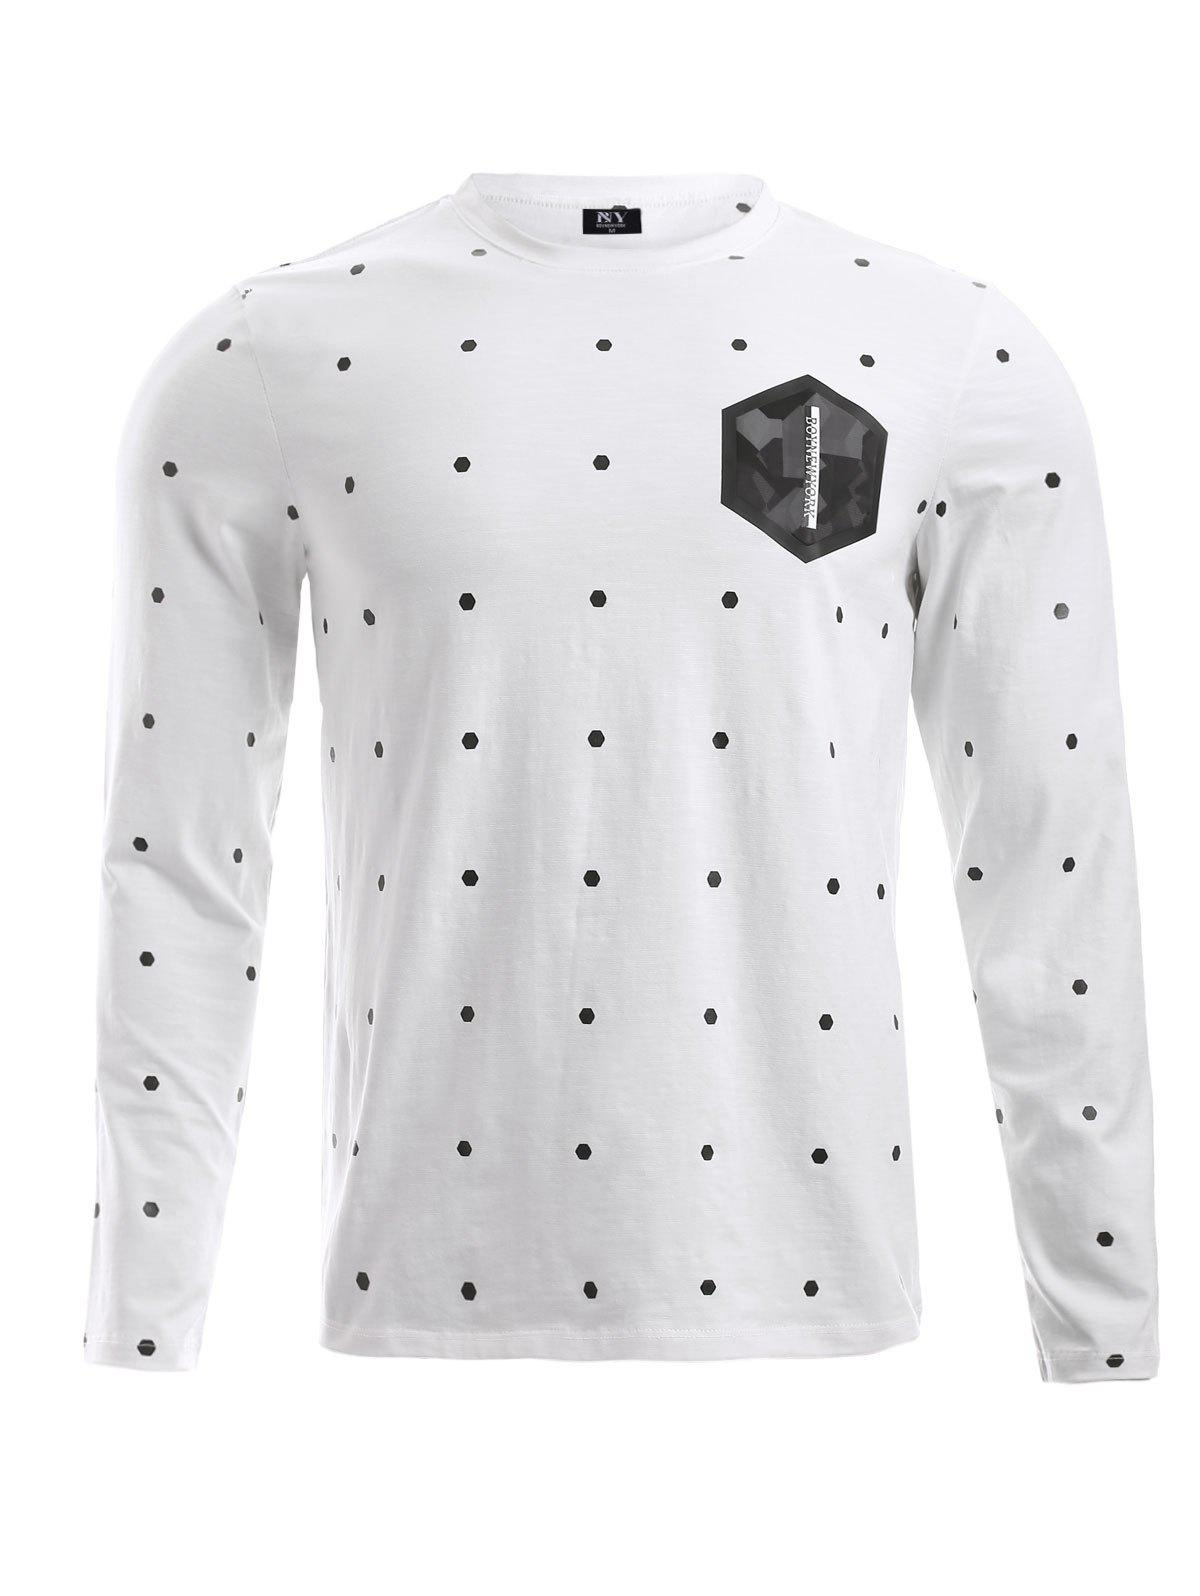 BoyNewYork Dot Geometric Pattern T-Shirt - WHITE XL